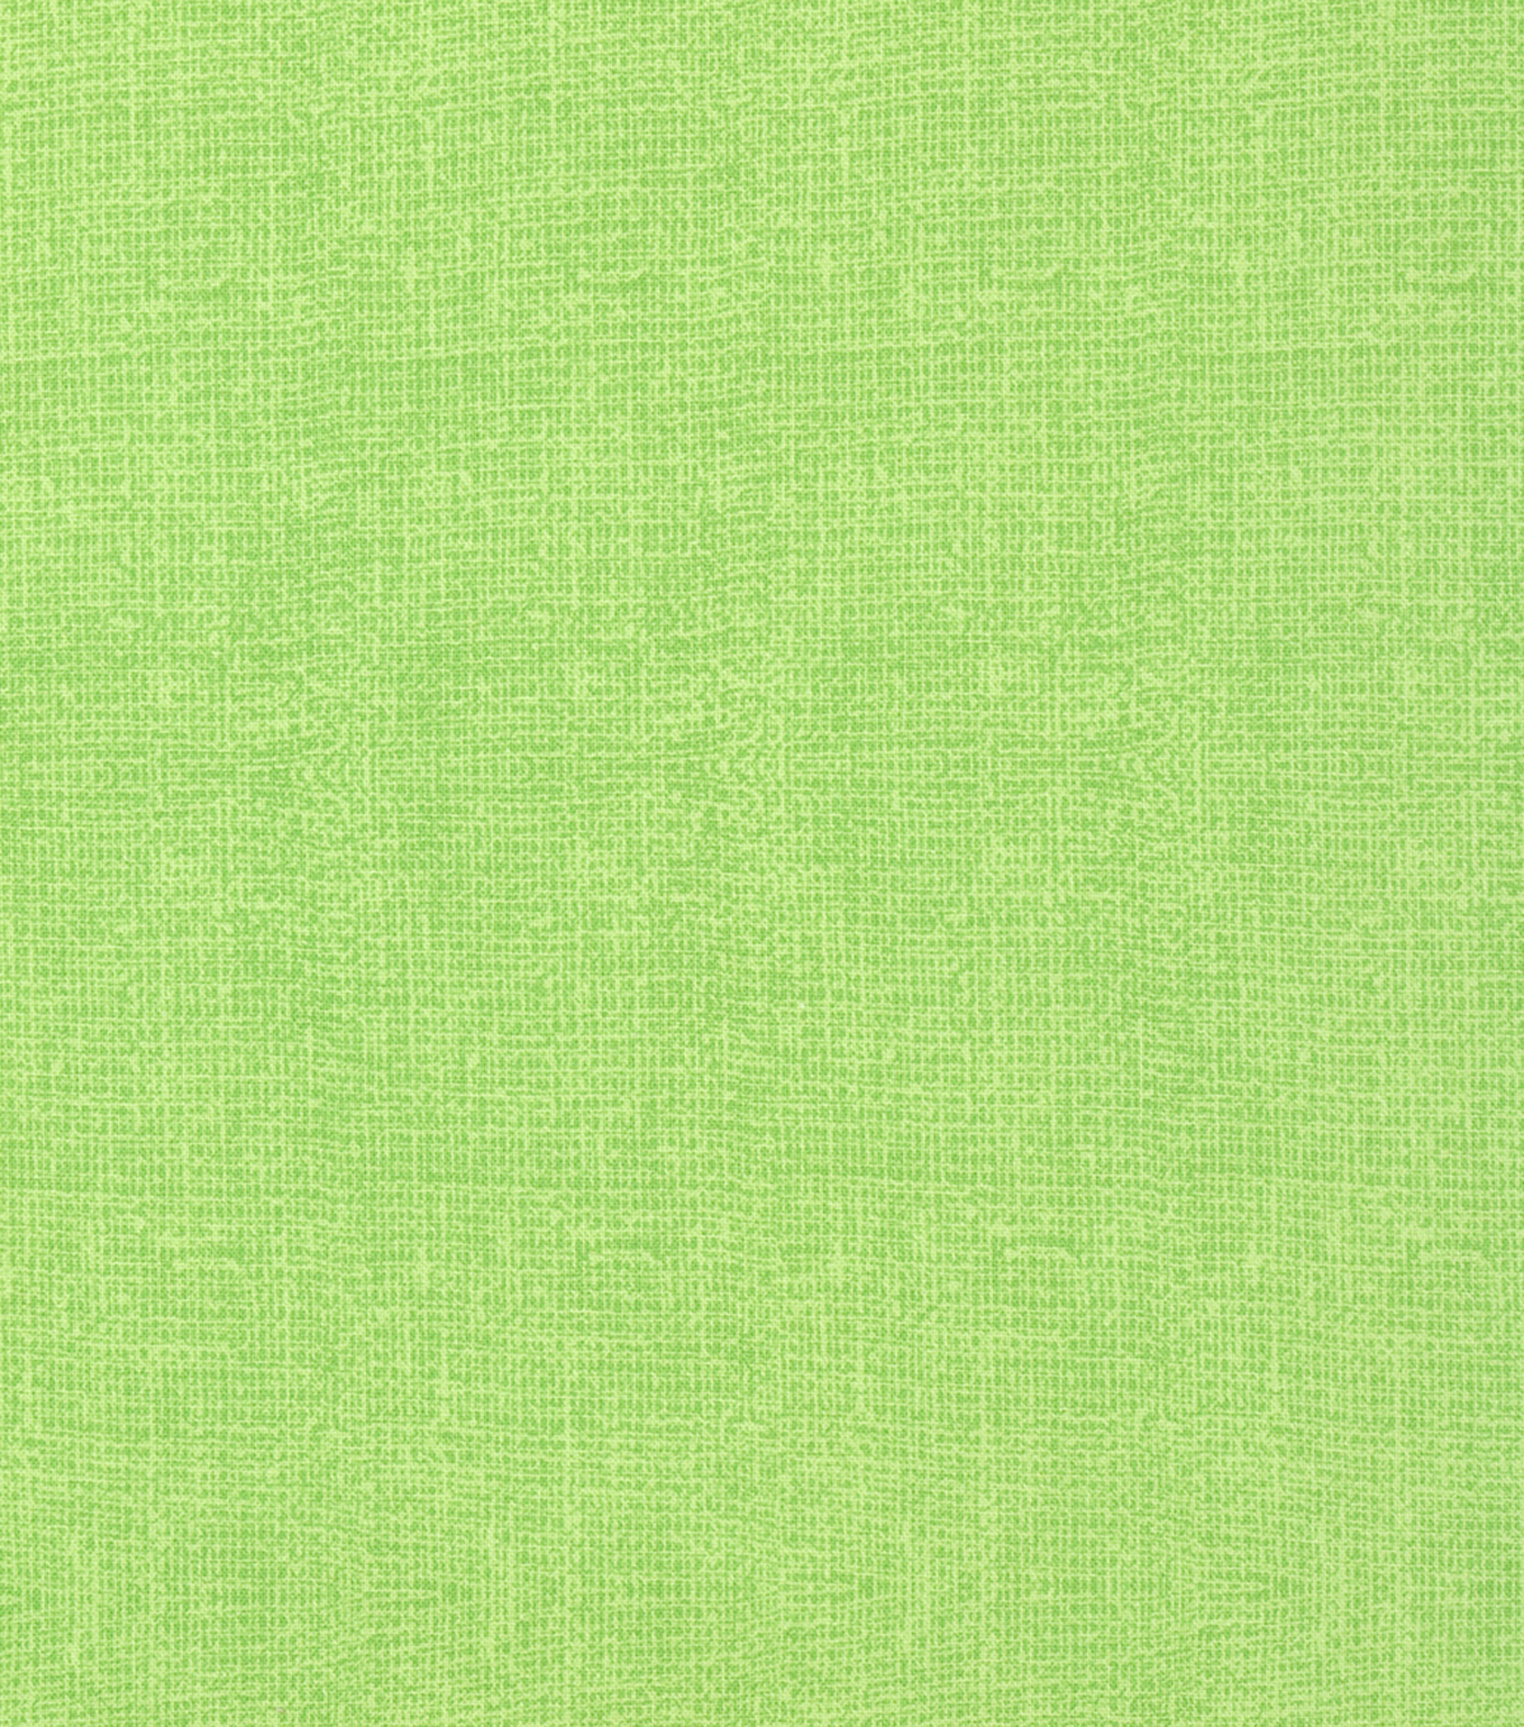 Keepsake Calico™ Cotton Fabric 43''-Green